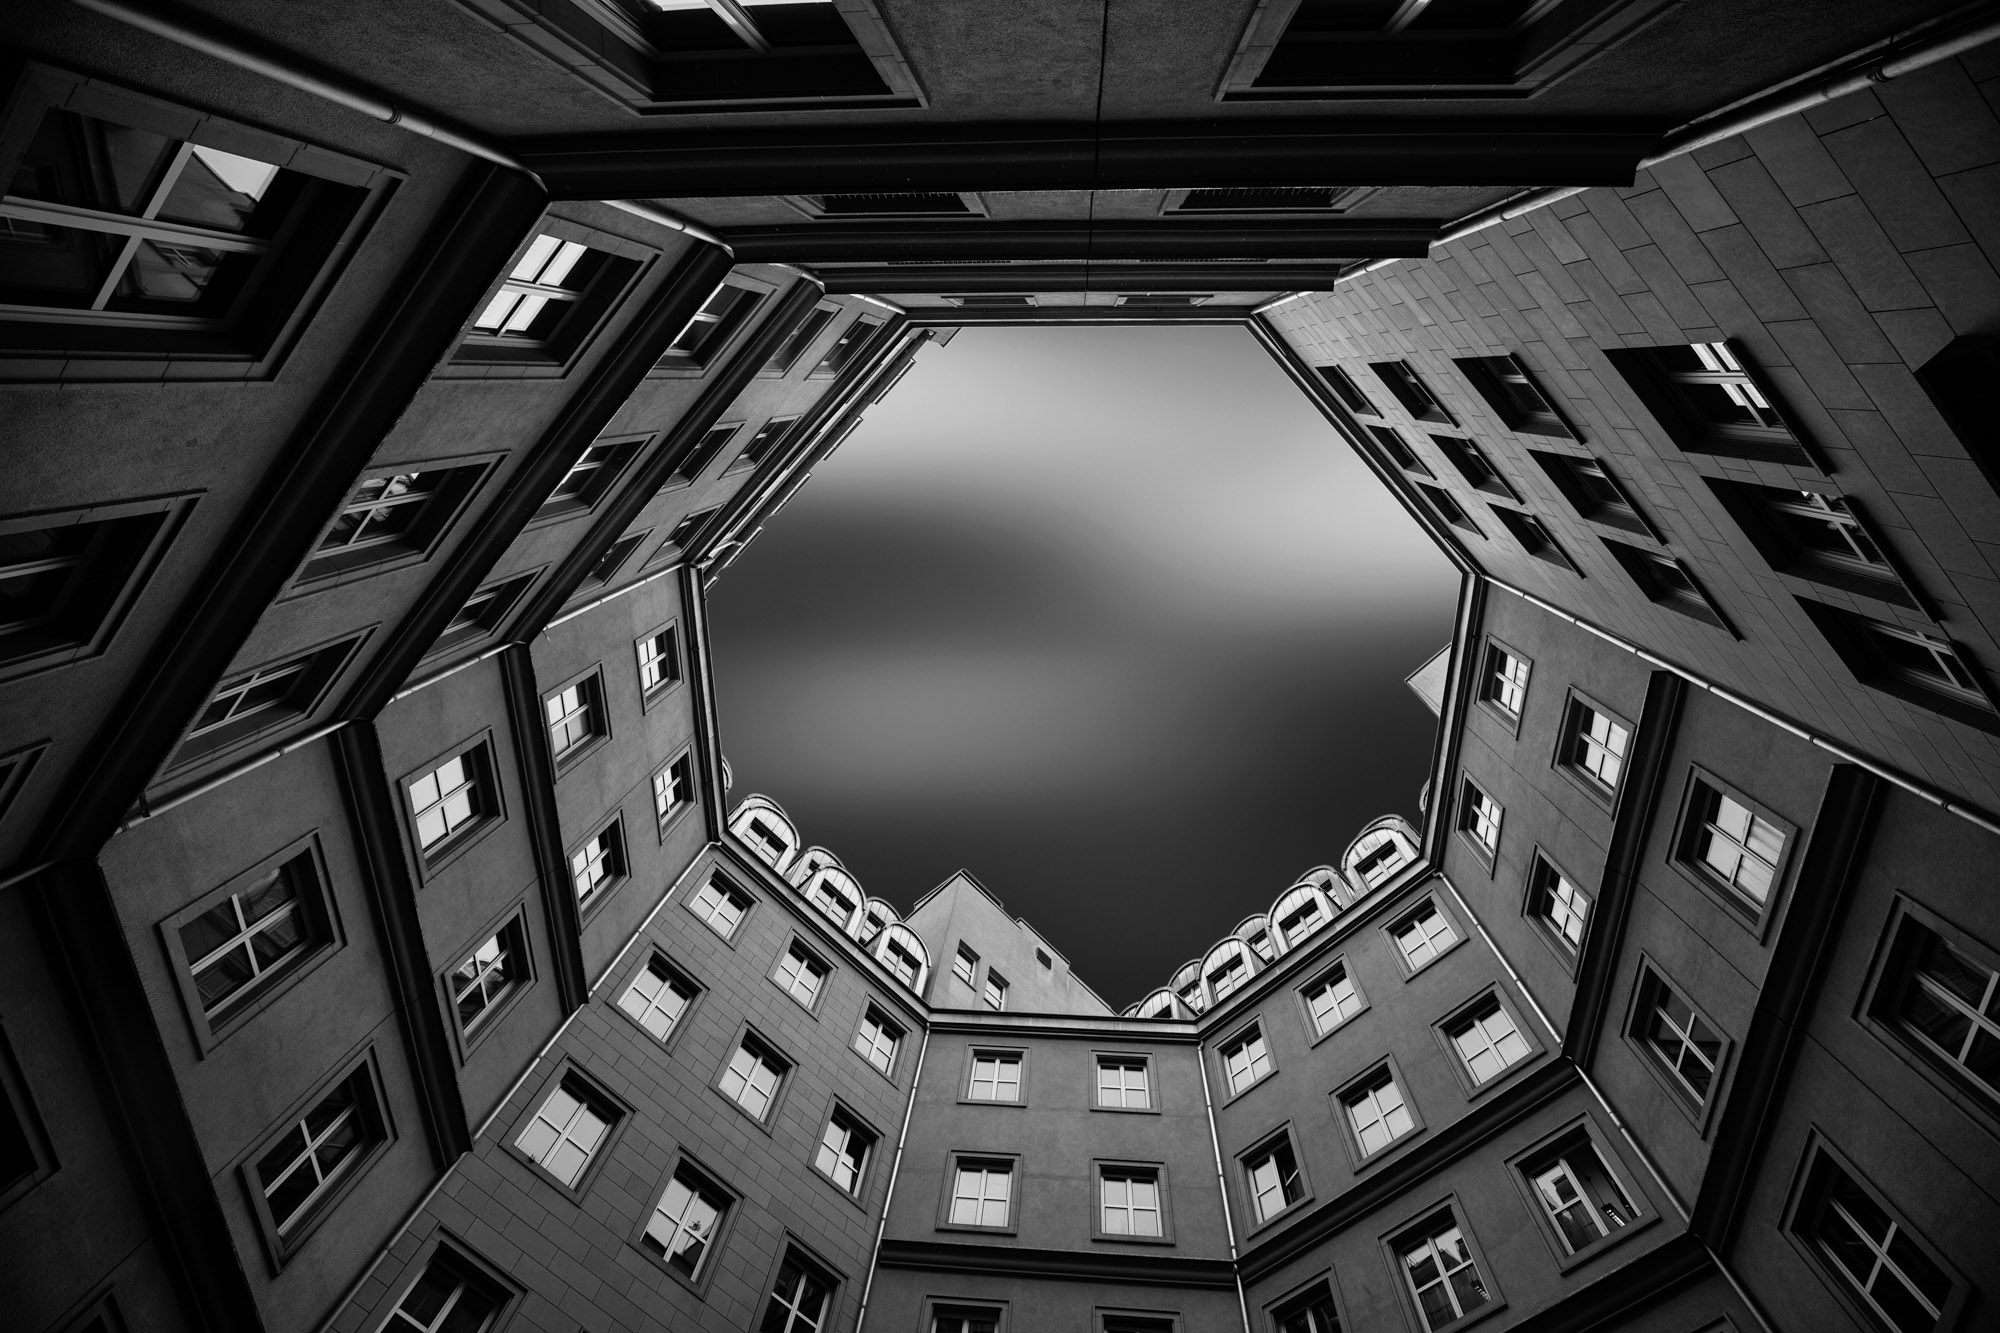 long exposure architecture photograph looking up through courtyard to sky in modern building